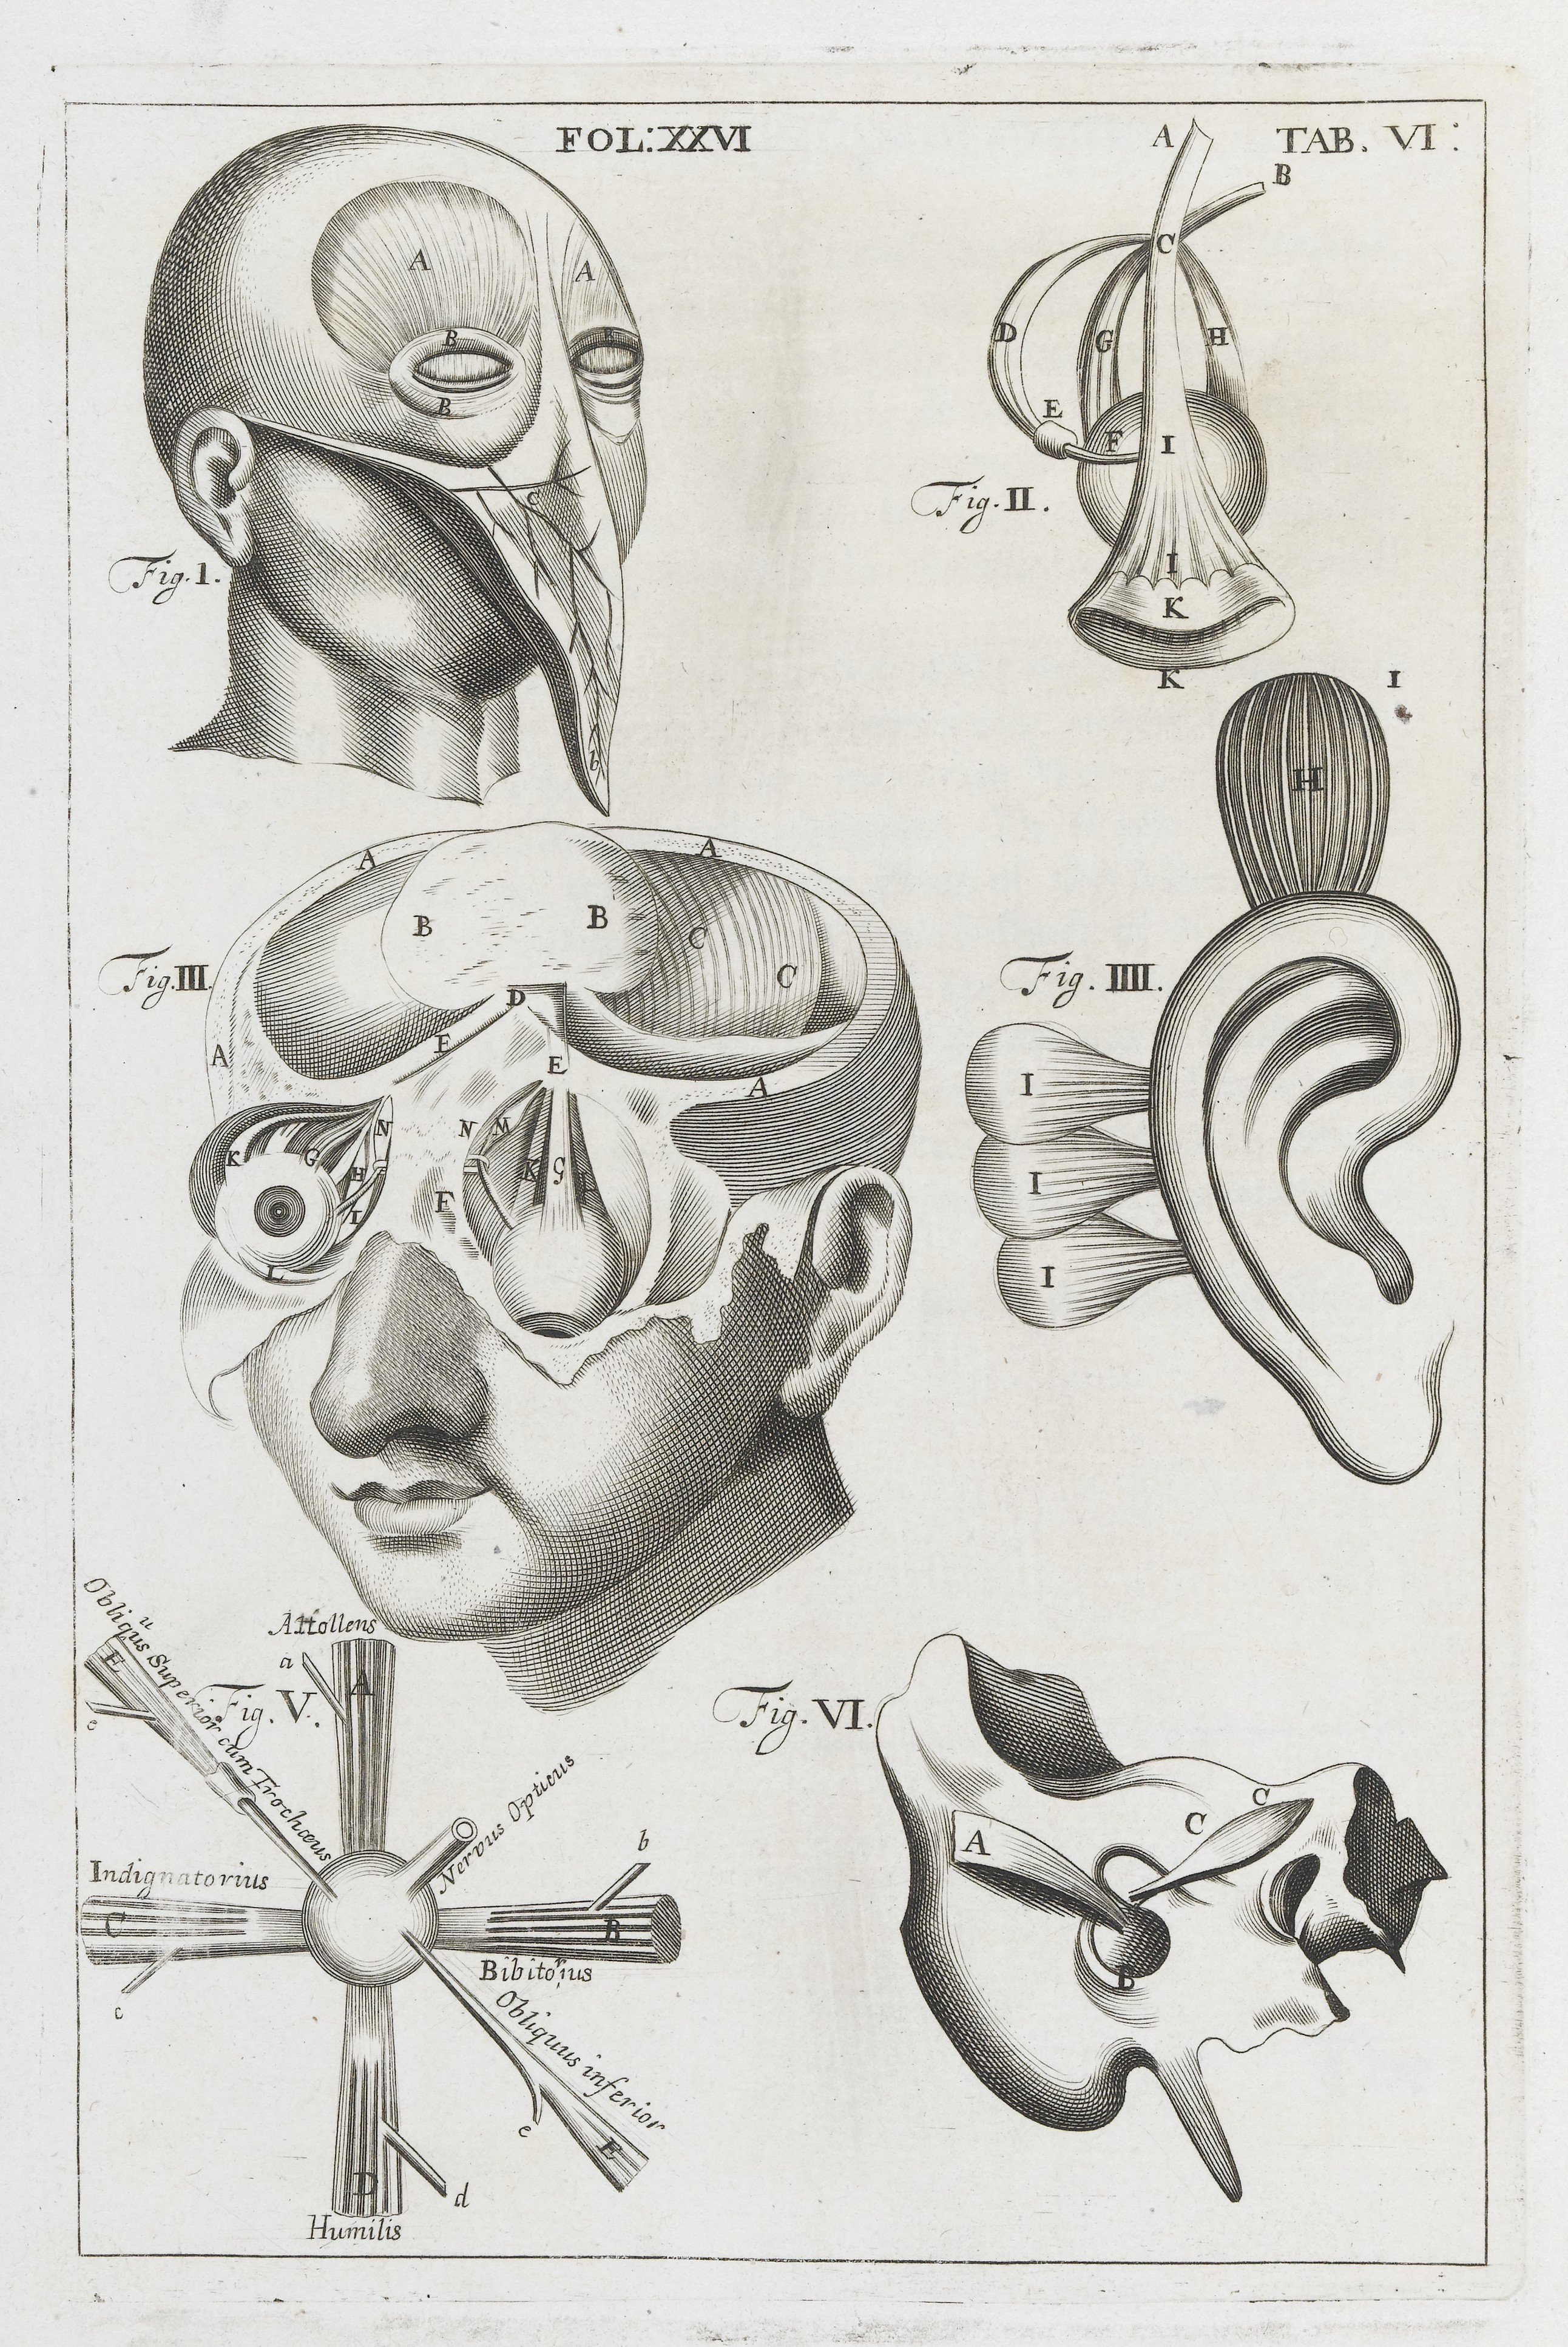 Anatomical illustrations showing muscles of the eyes & ears; photo from Wellcome Images